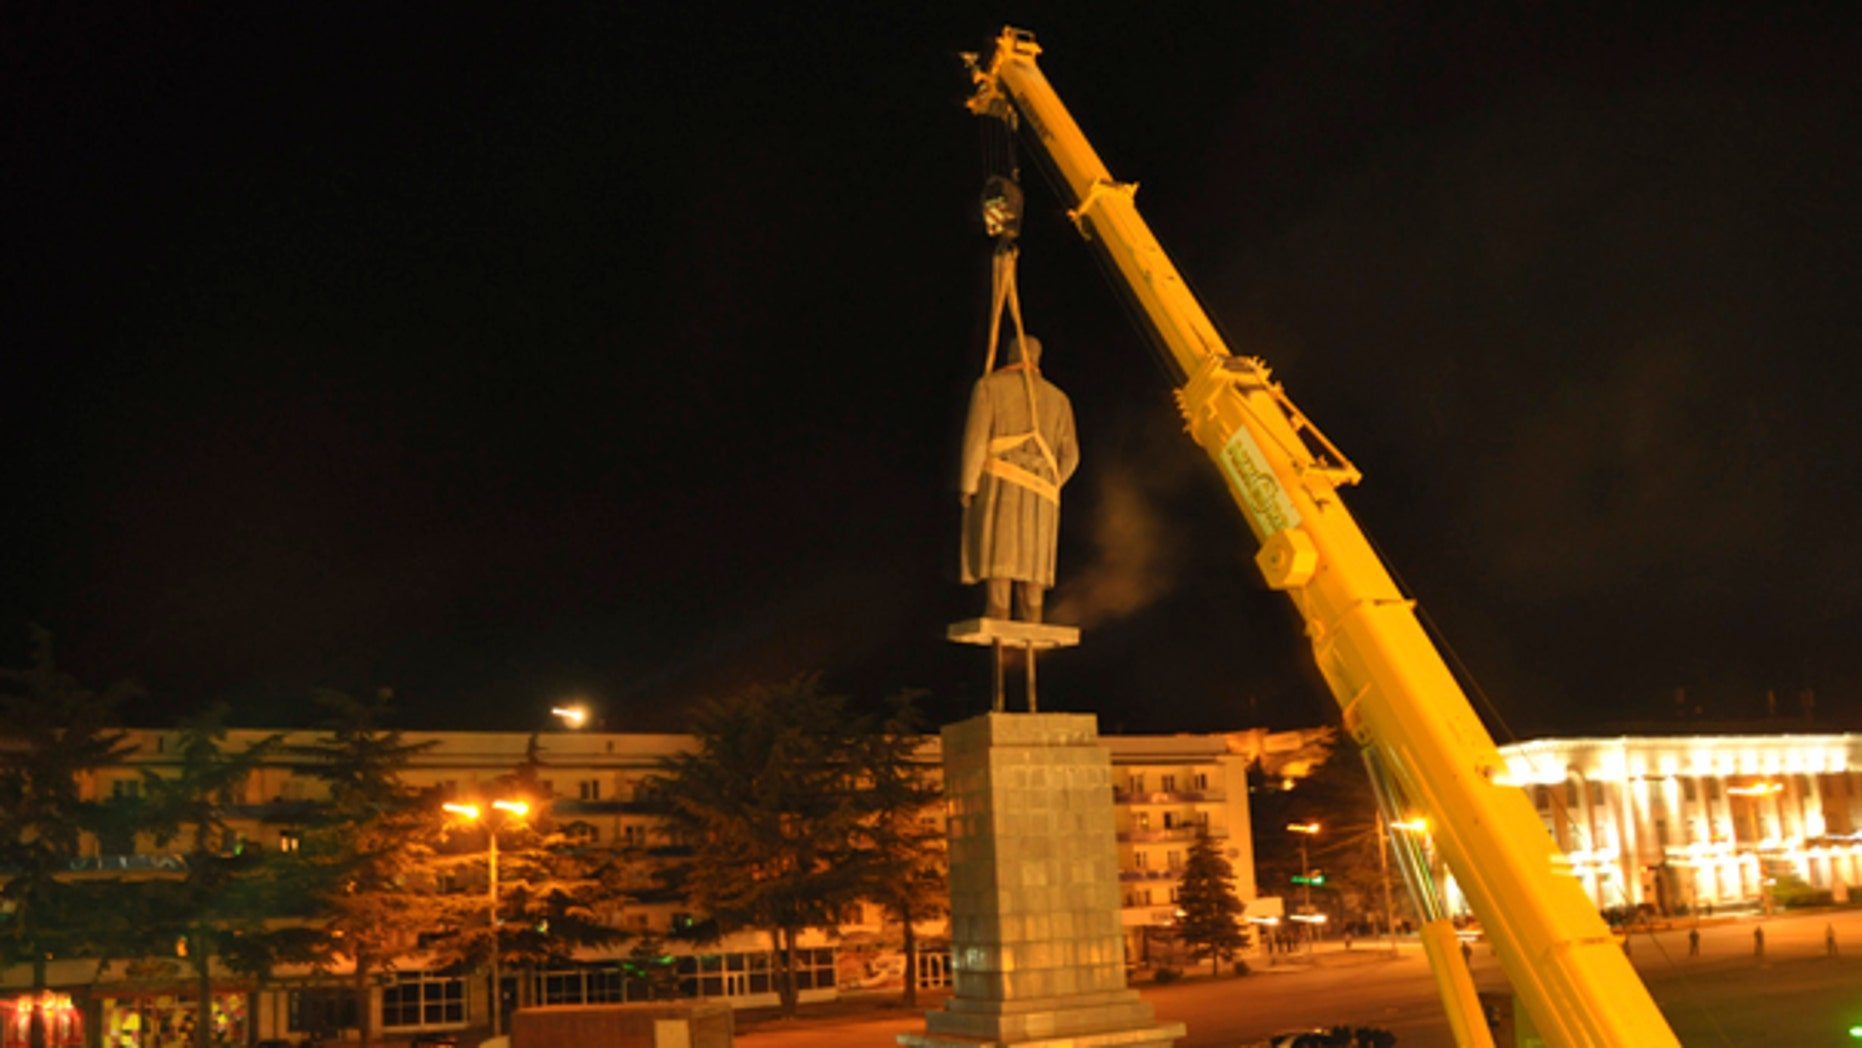 June 25: In this photo released by Gori region administration a statue of Soviet dictator Josef Stalin is dismantled at his home town of Gori, 80 kms (50 miles) west of the Georgian capital Tbilisi.  Authorities in Georgia have torn down a monument to Soviet dictator Josef Stalin in his birthplace of Gori to make way for a memorial to the fallen in the Russian-Georgian war of 2008. (AP)